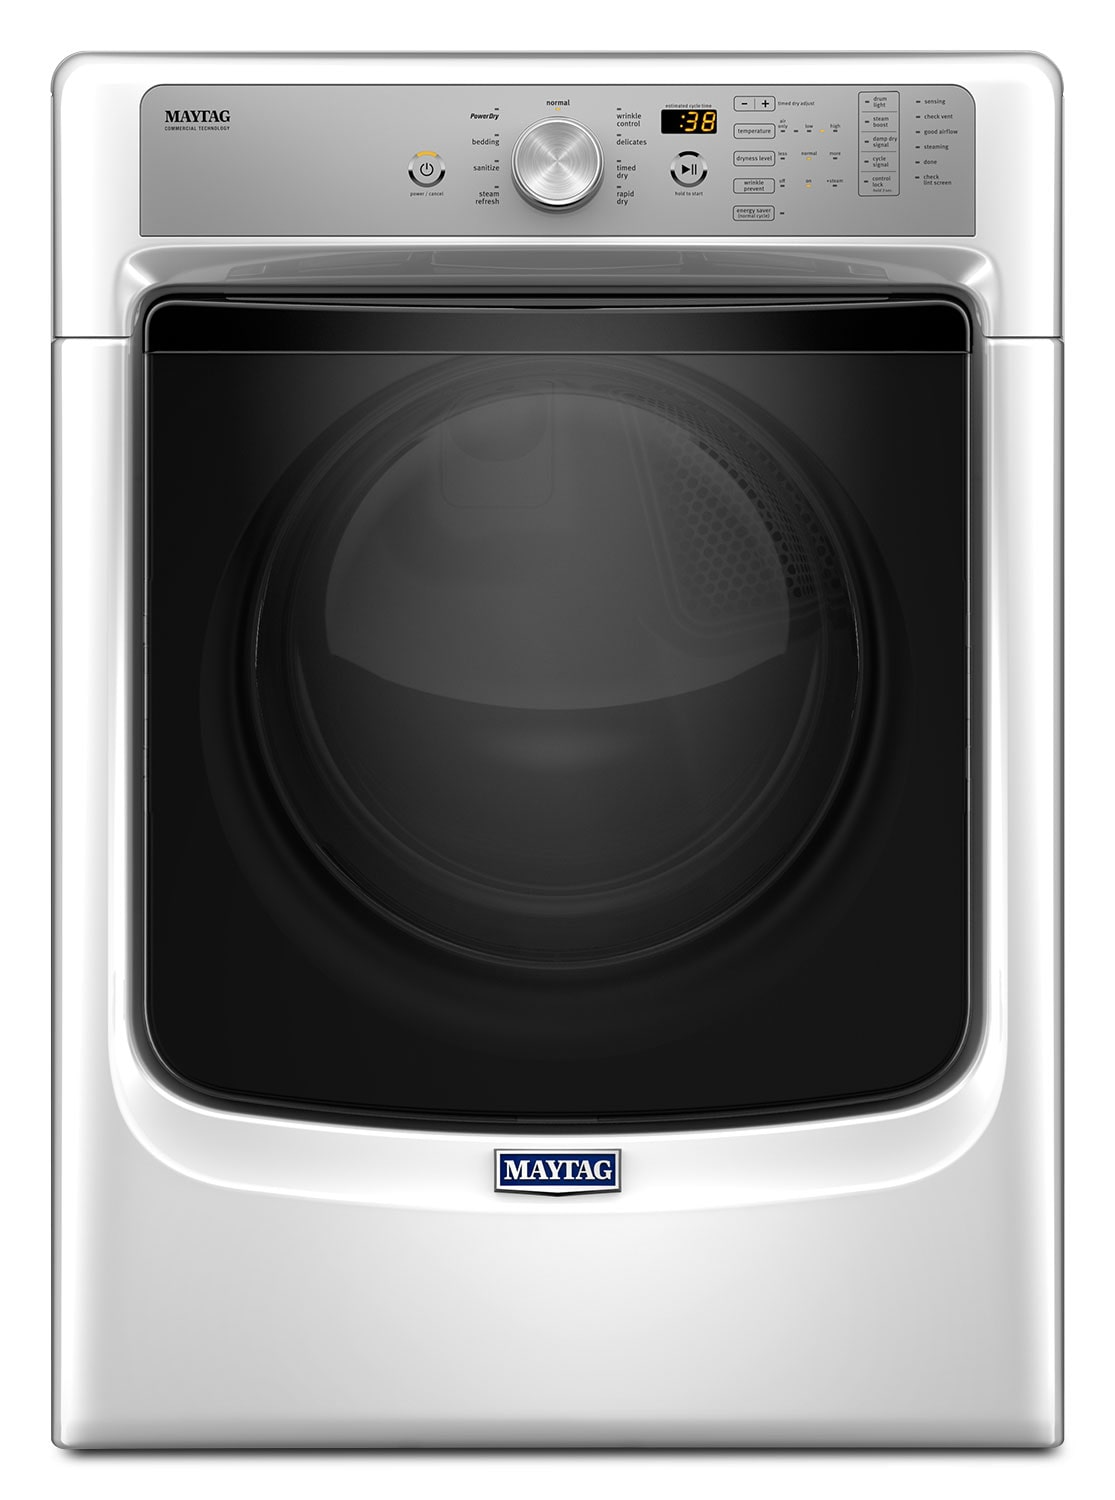 Maytag White Electric Dryer (7.4 Cu. Ft.) - YMED5500FW